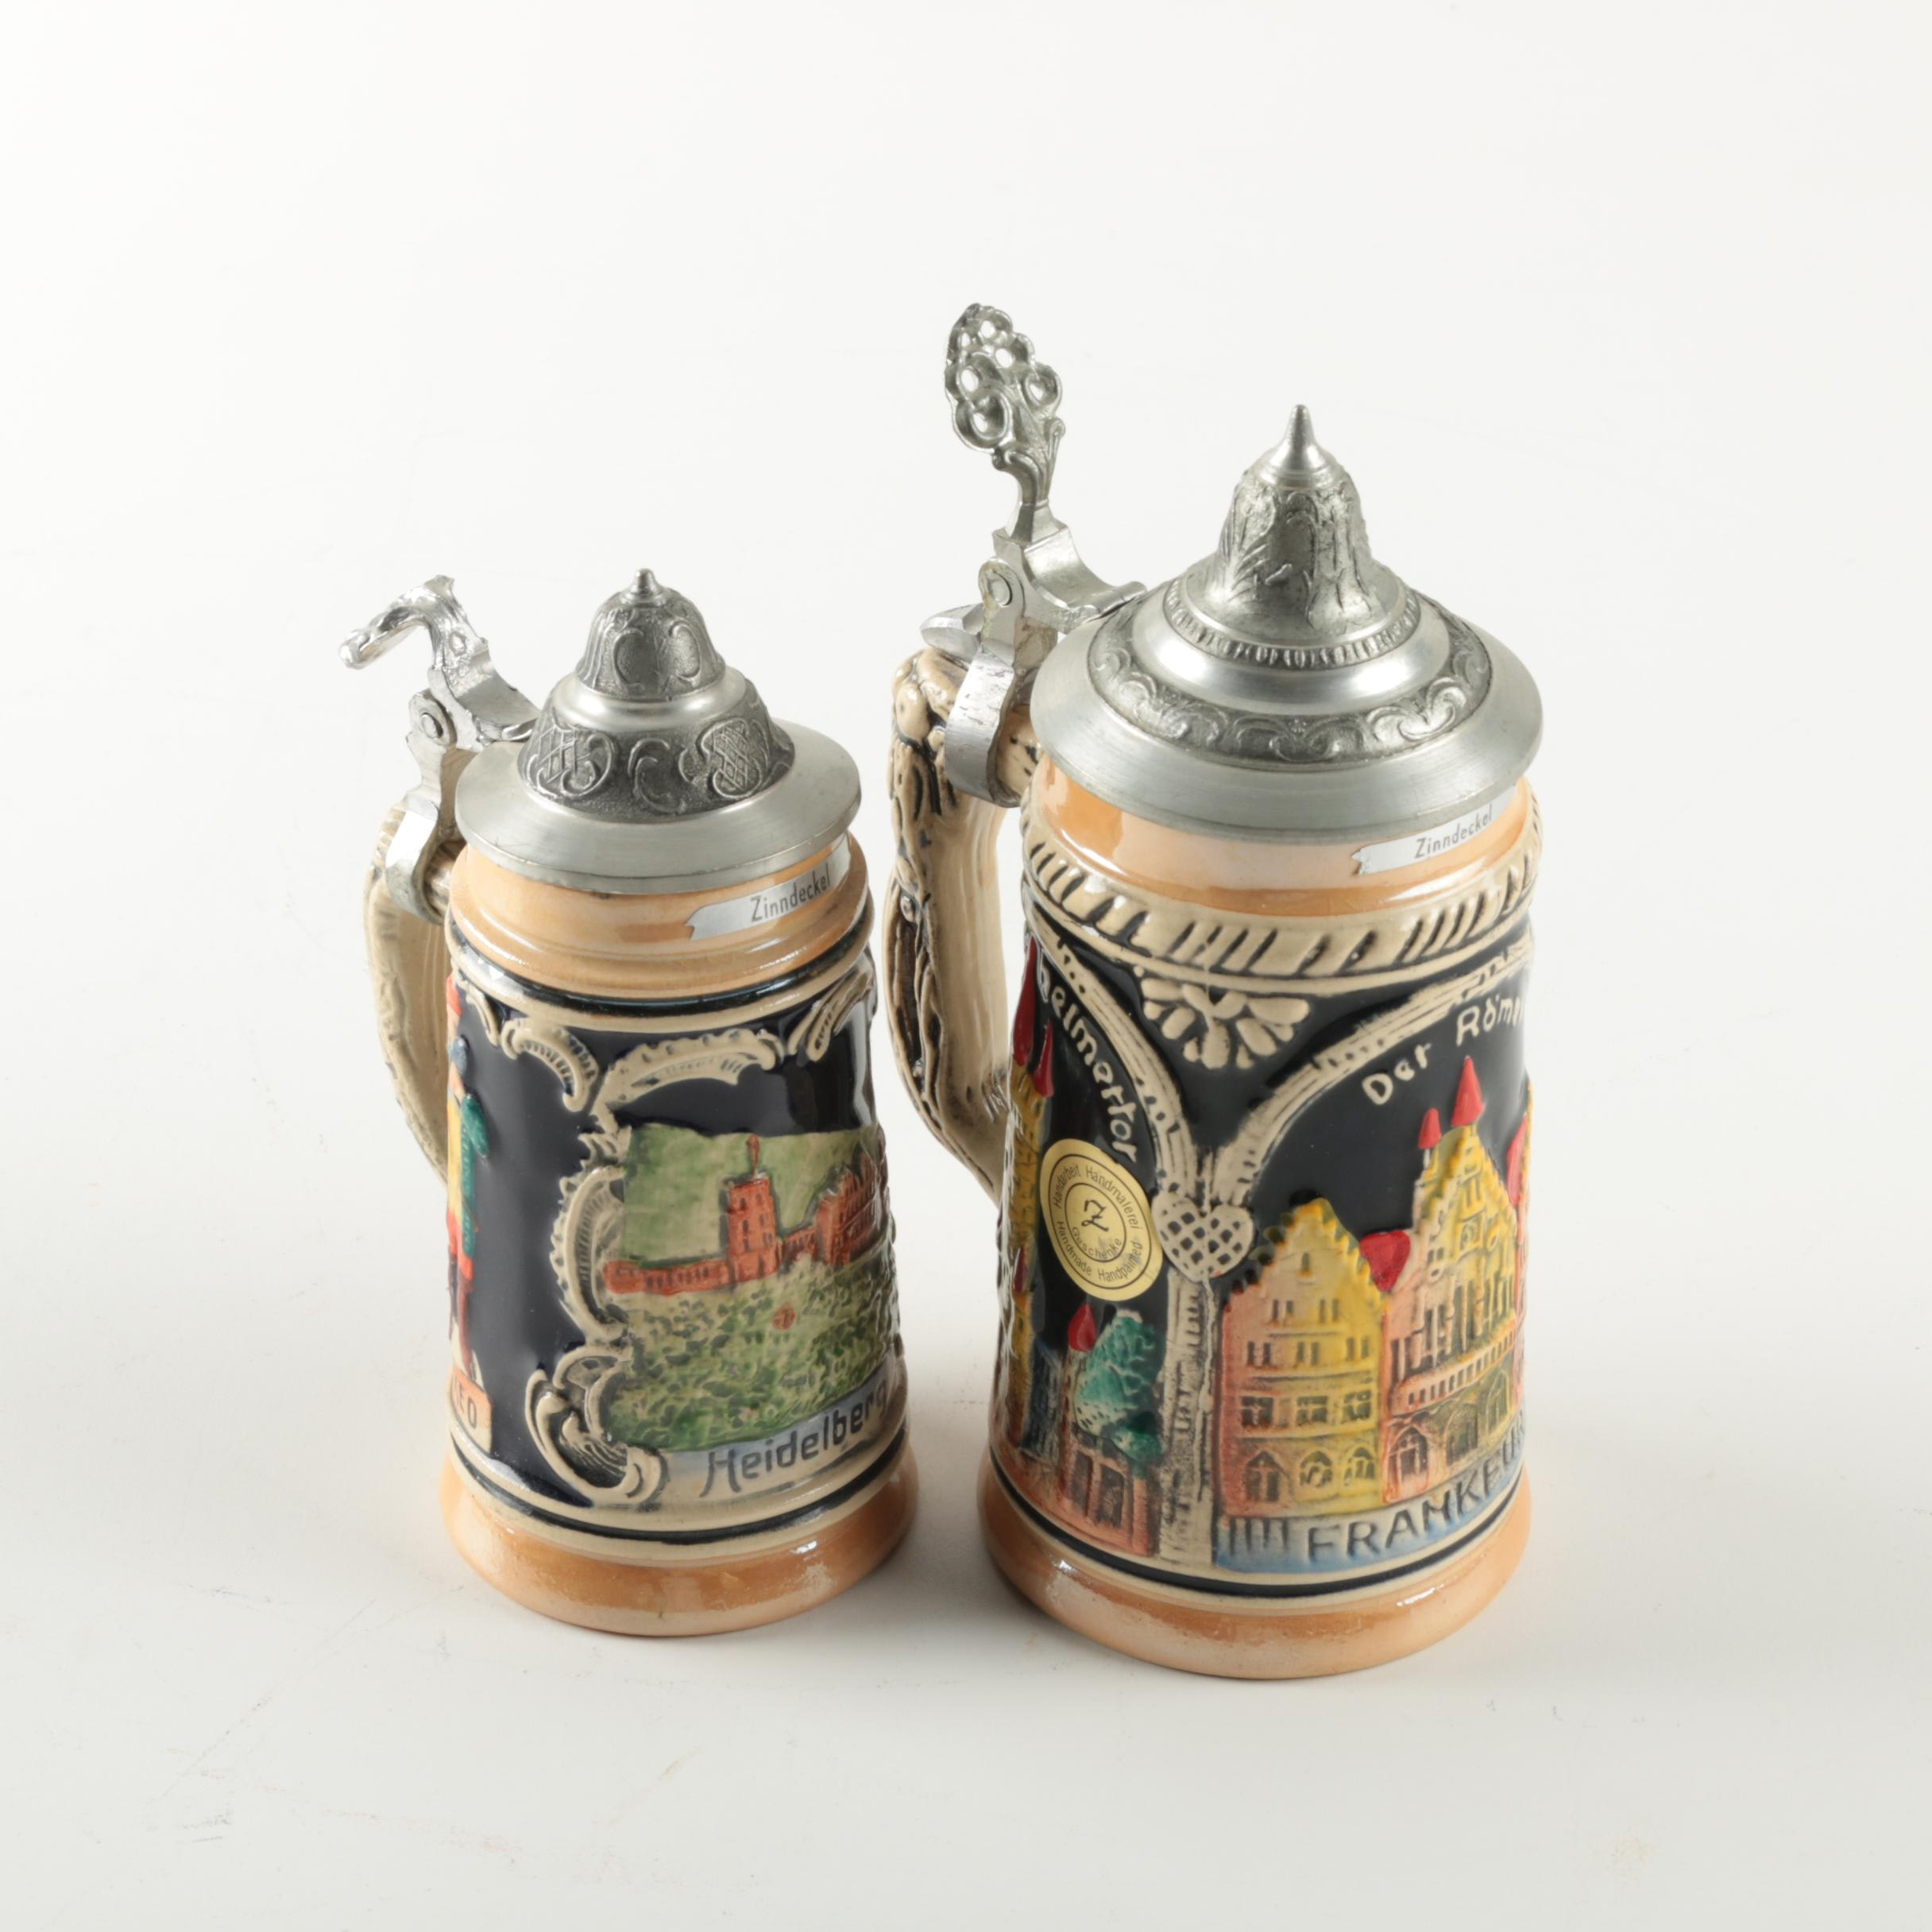 Lidded German Ceramic Beer Steins